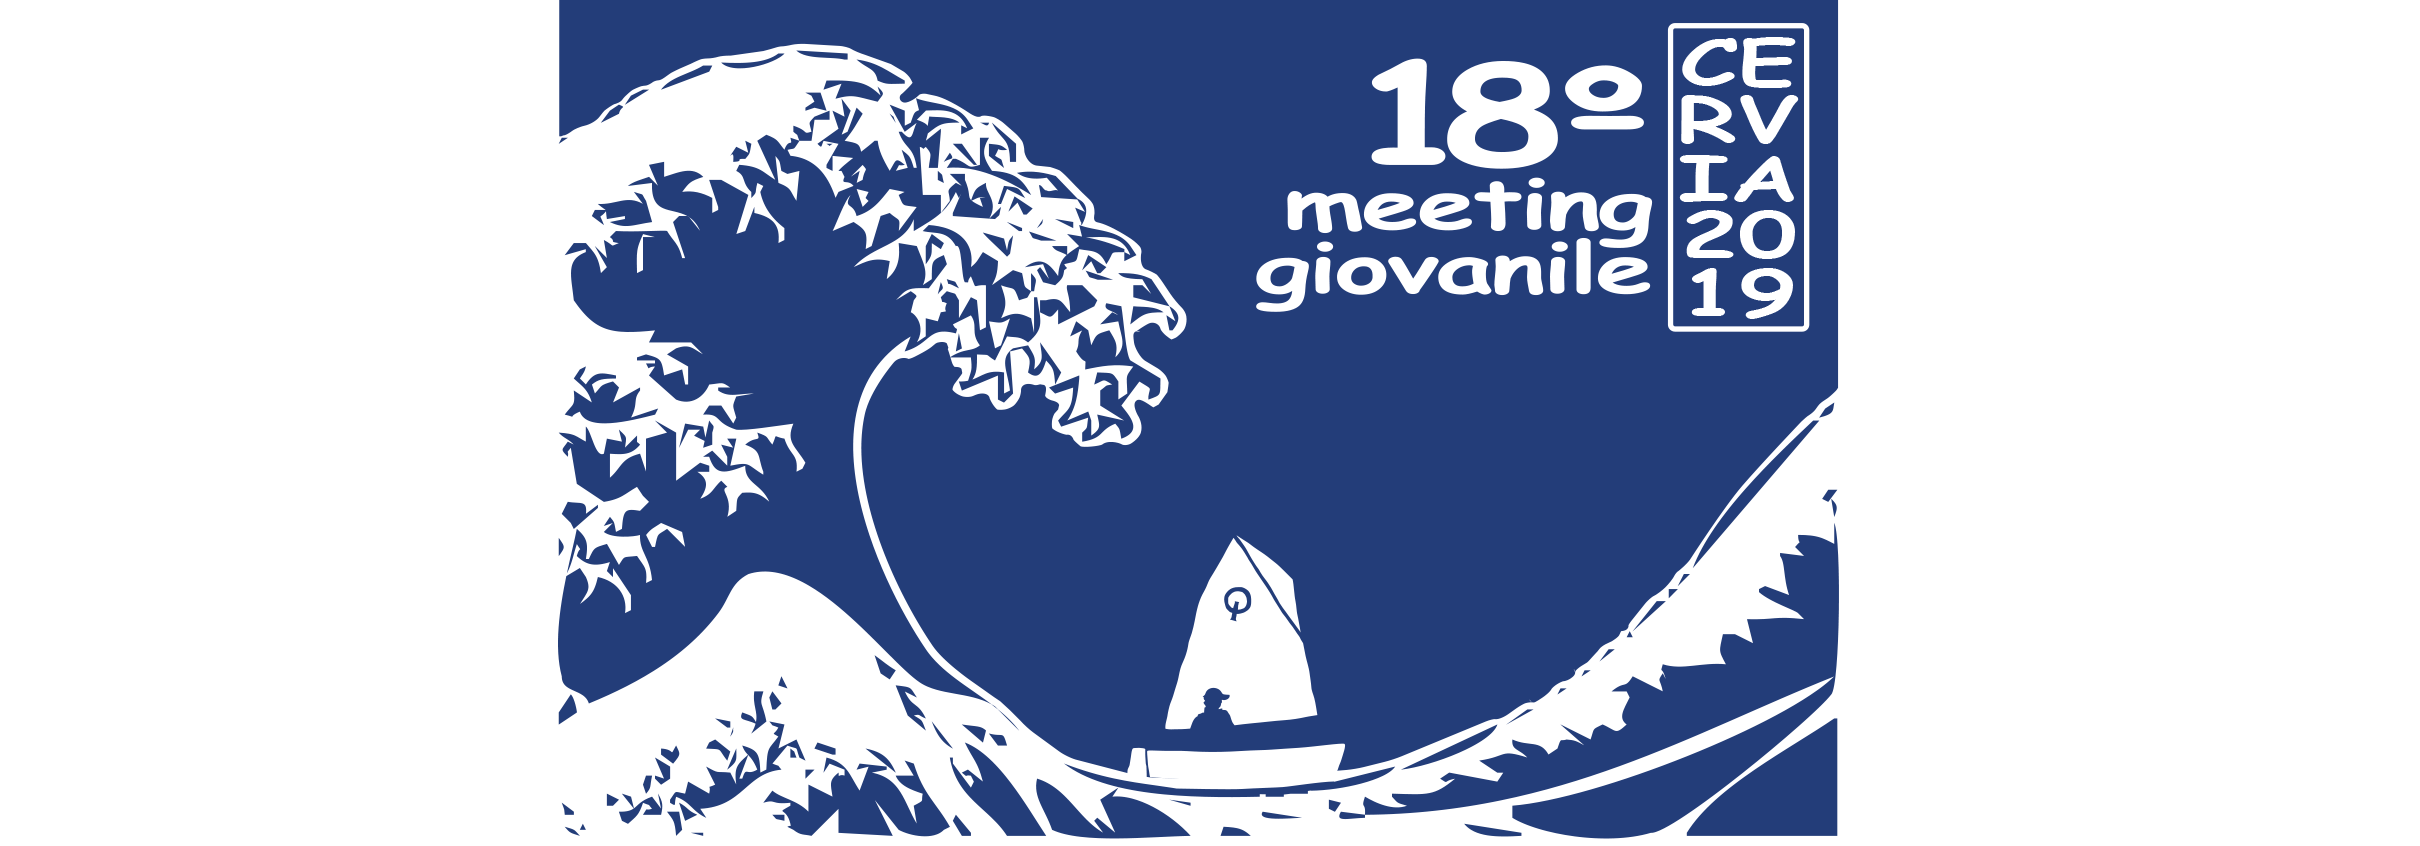 XVIII Meeting Giovanile